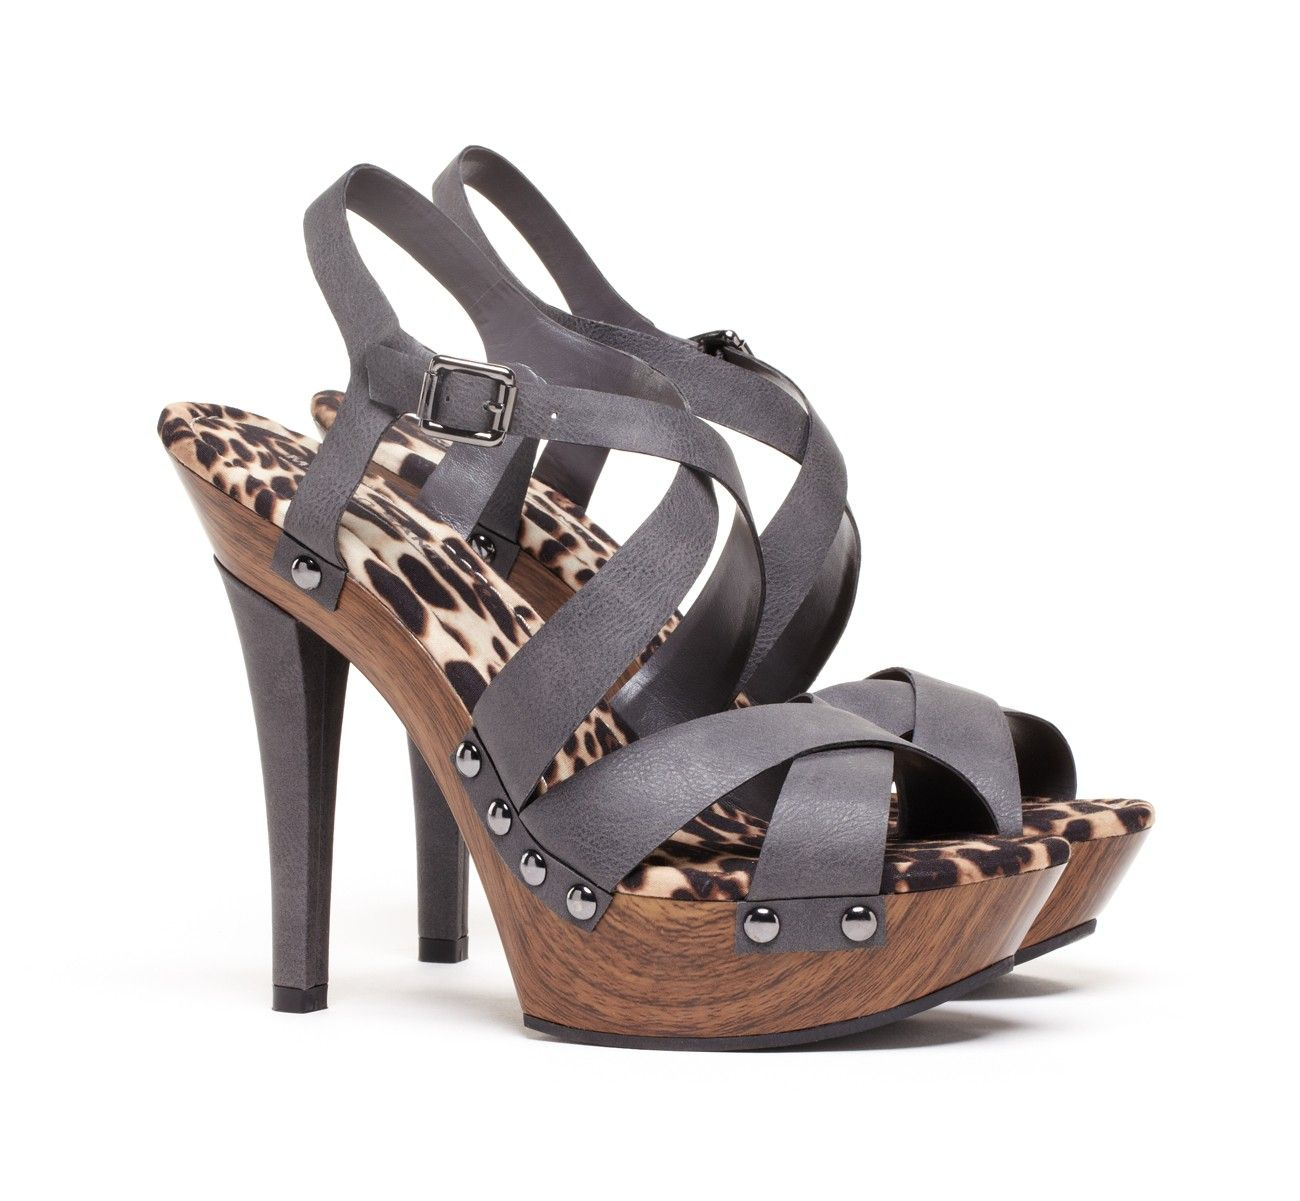 Strappy platform sandal with animal printed design and stud detail